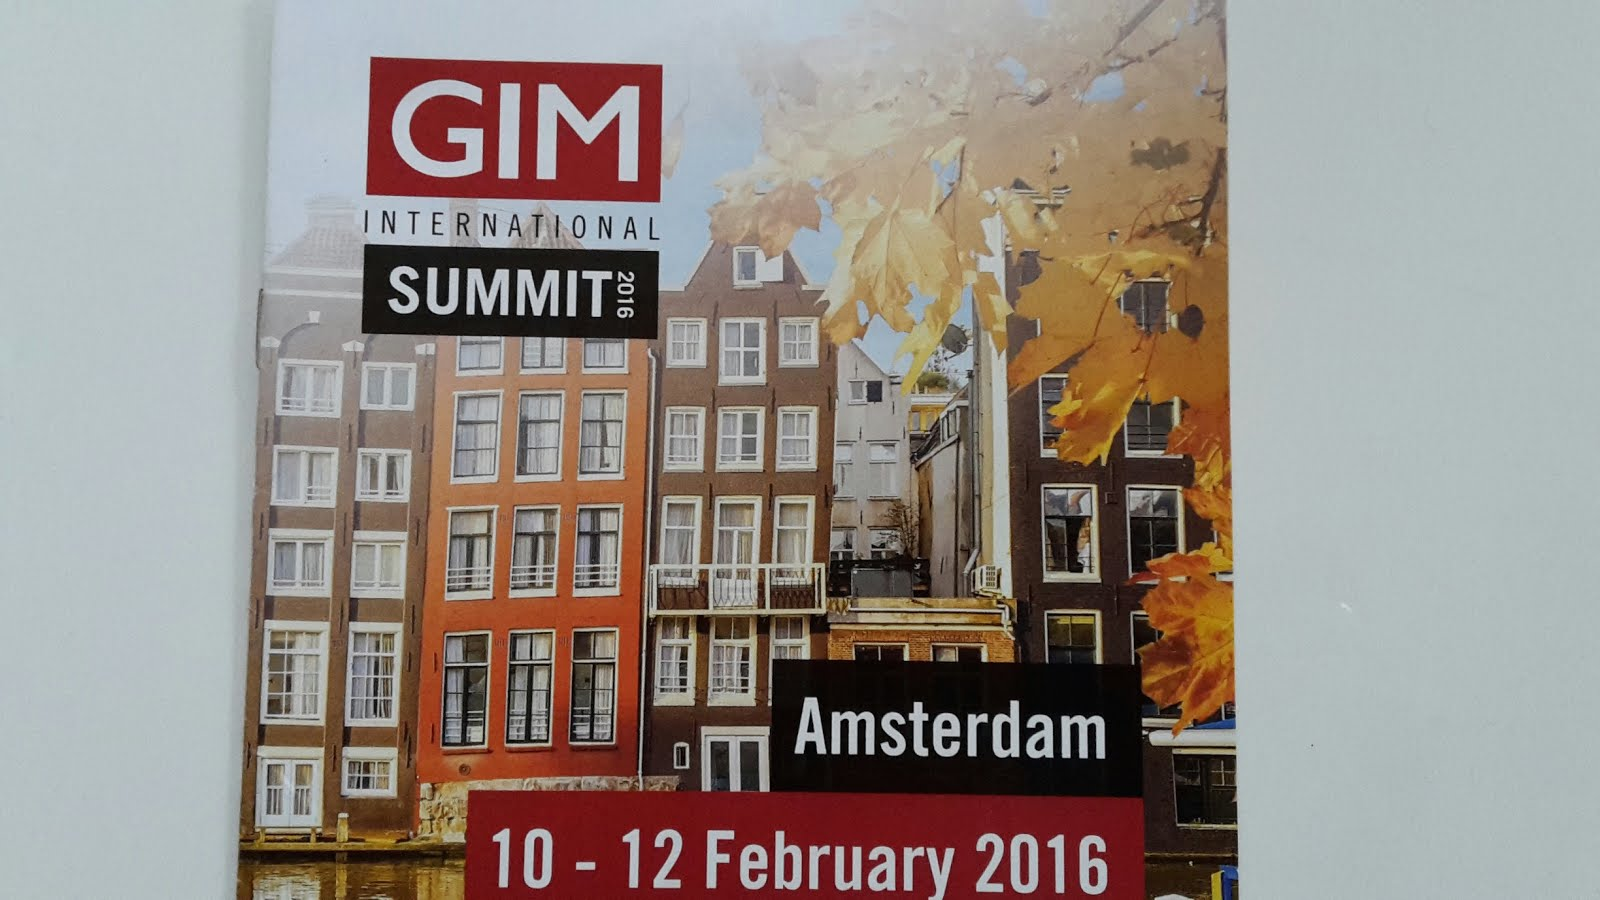 GIM International Summit 2016